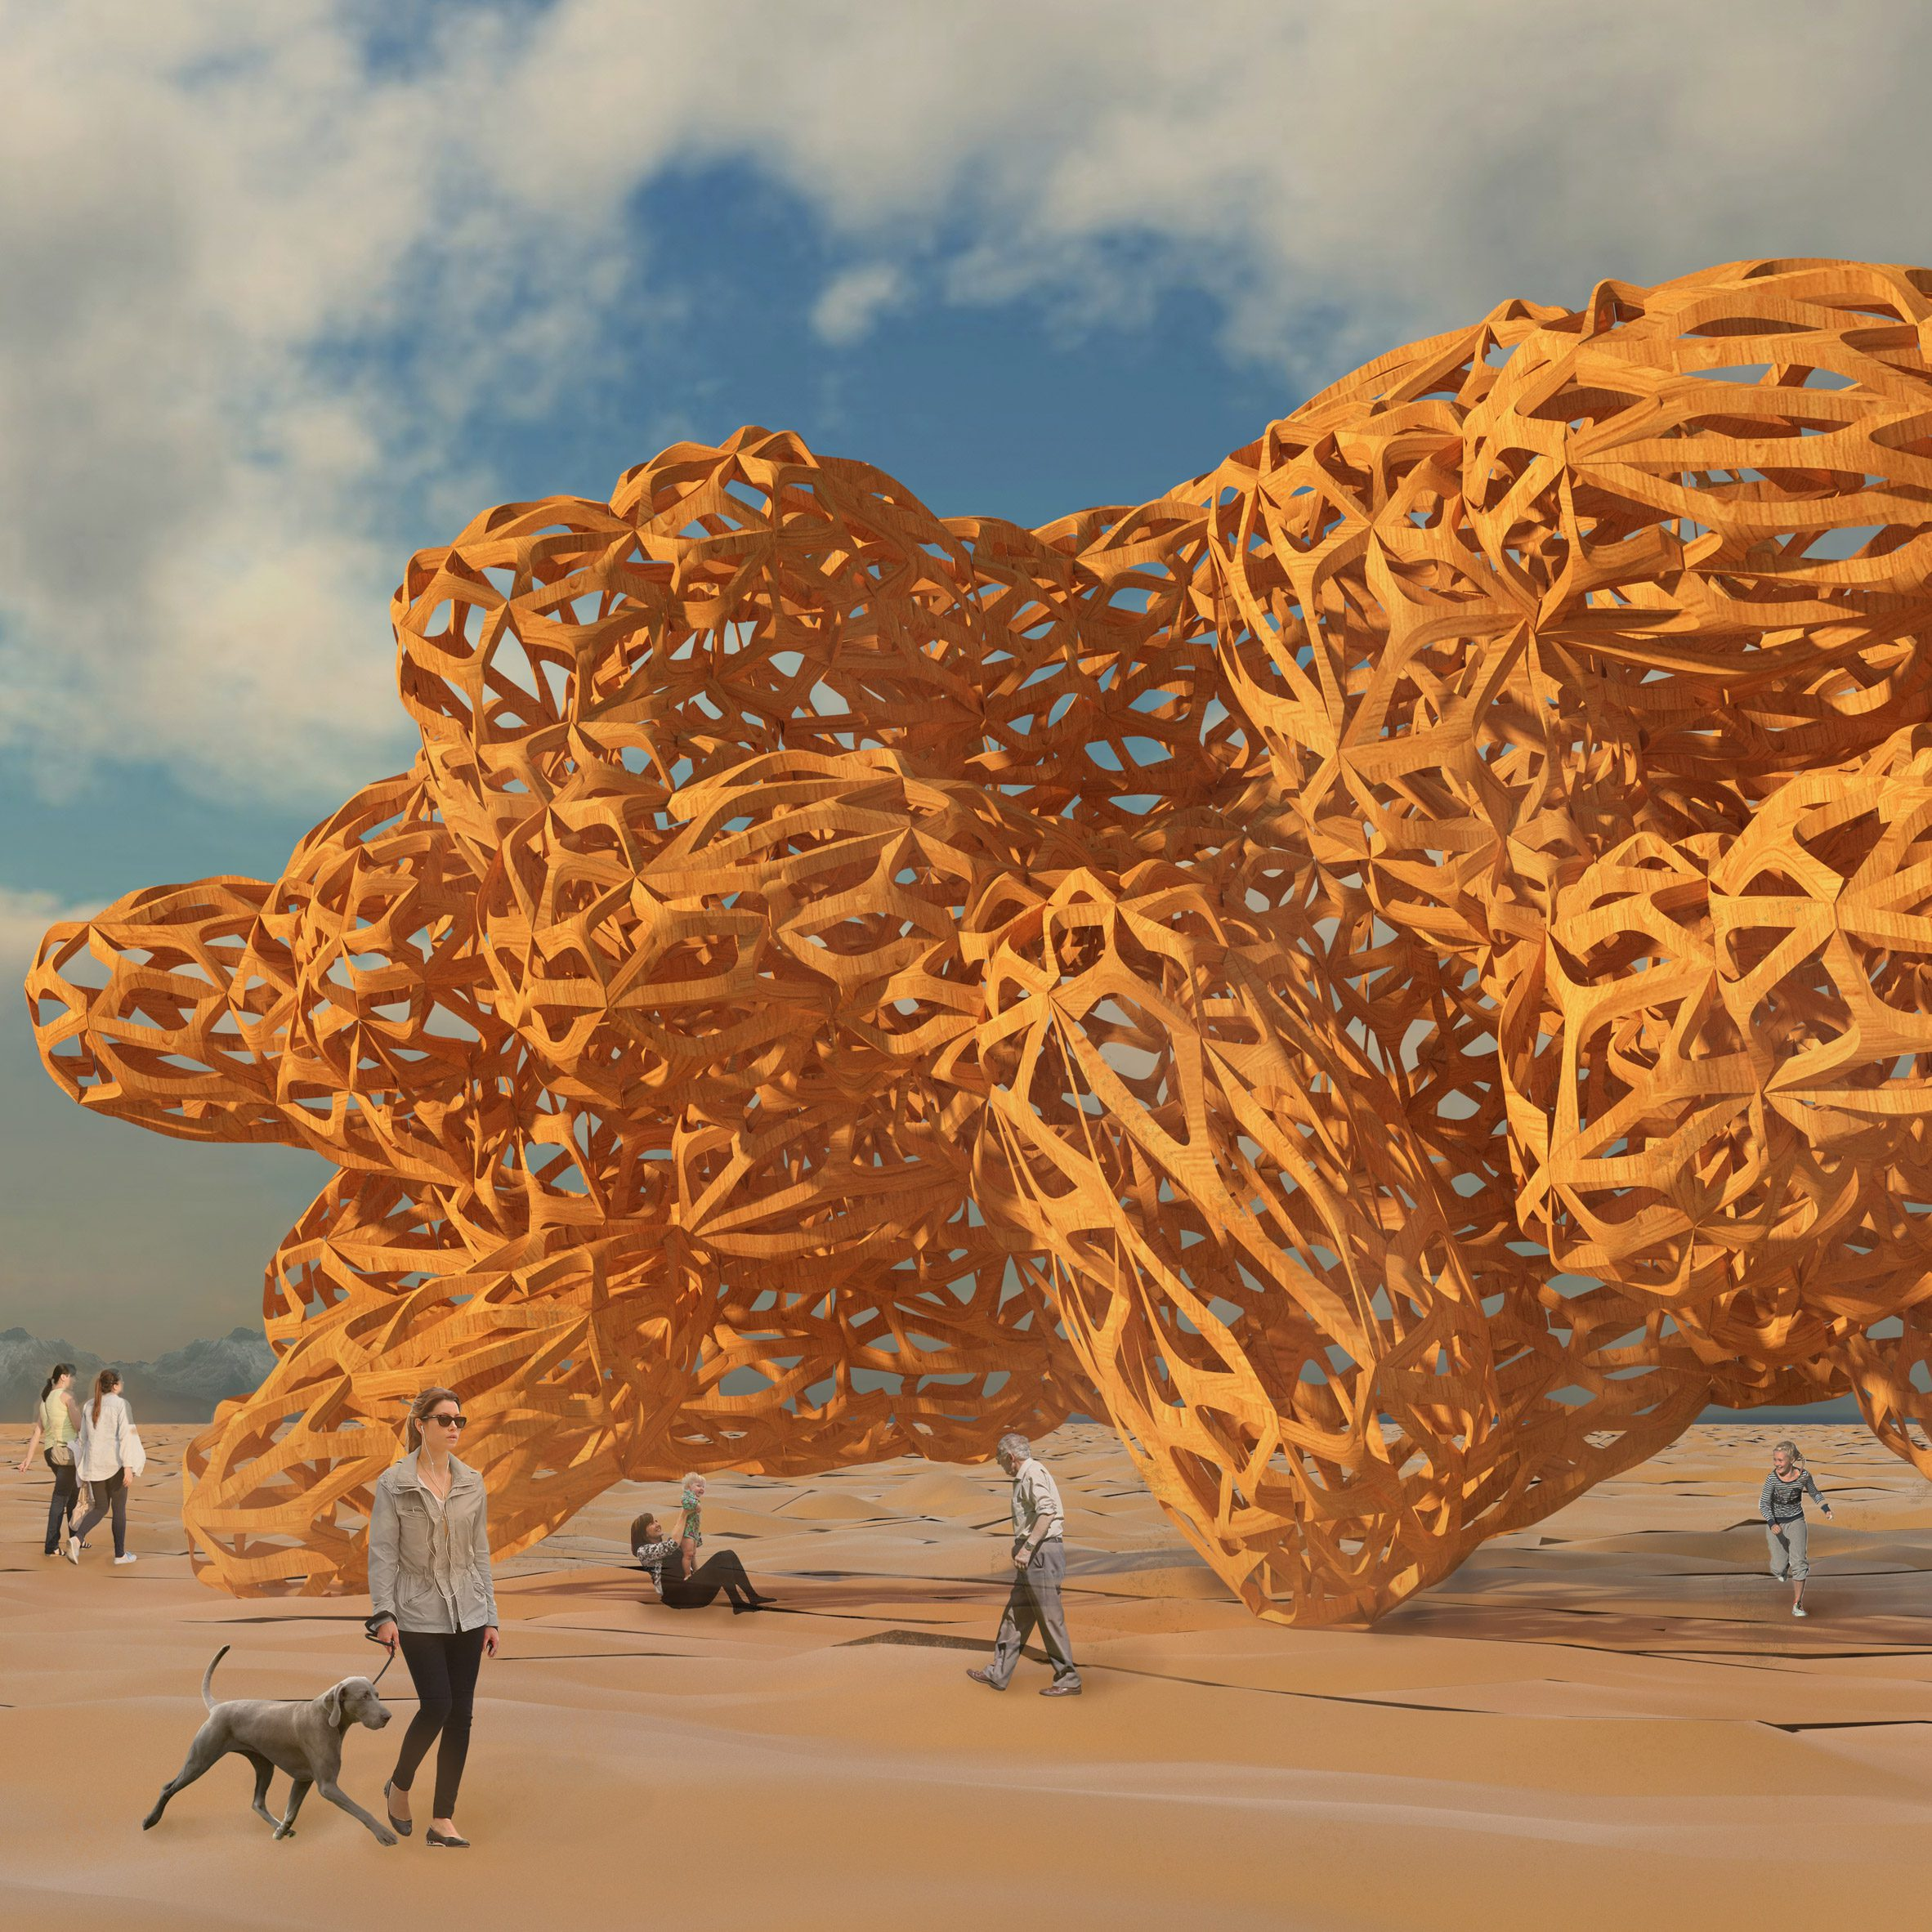 Ten design projects from students at Monash University